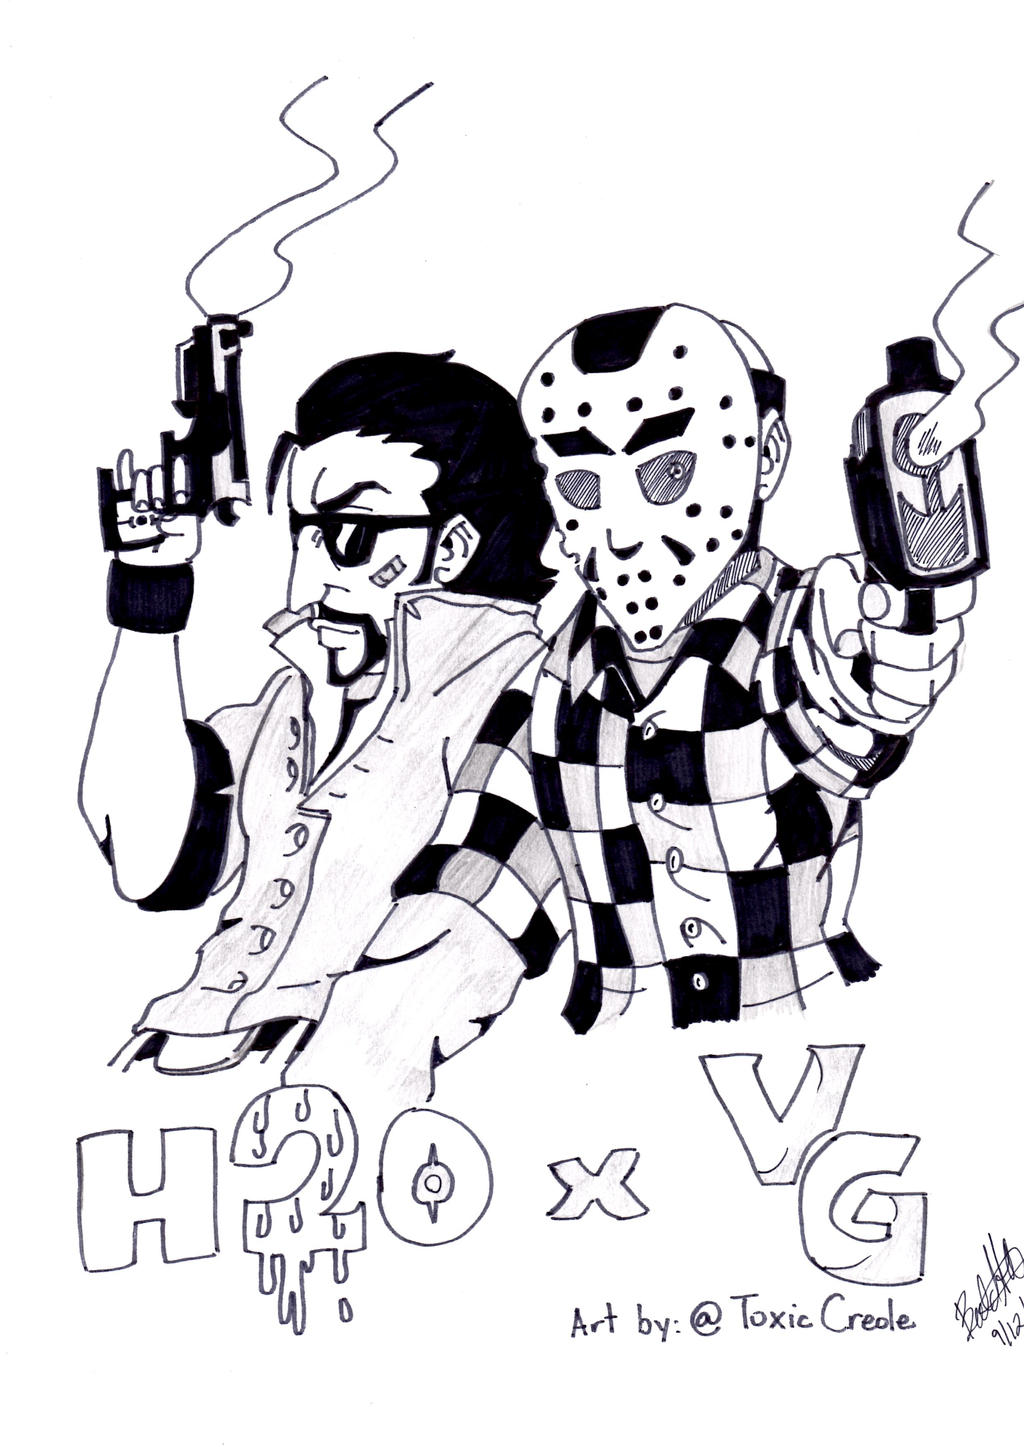 H20 Delerioud - Free Coloring Pages H20 Delirious Drawings